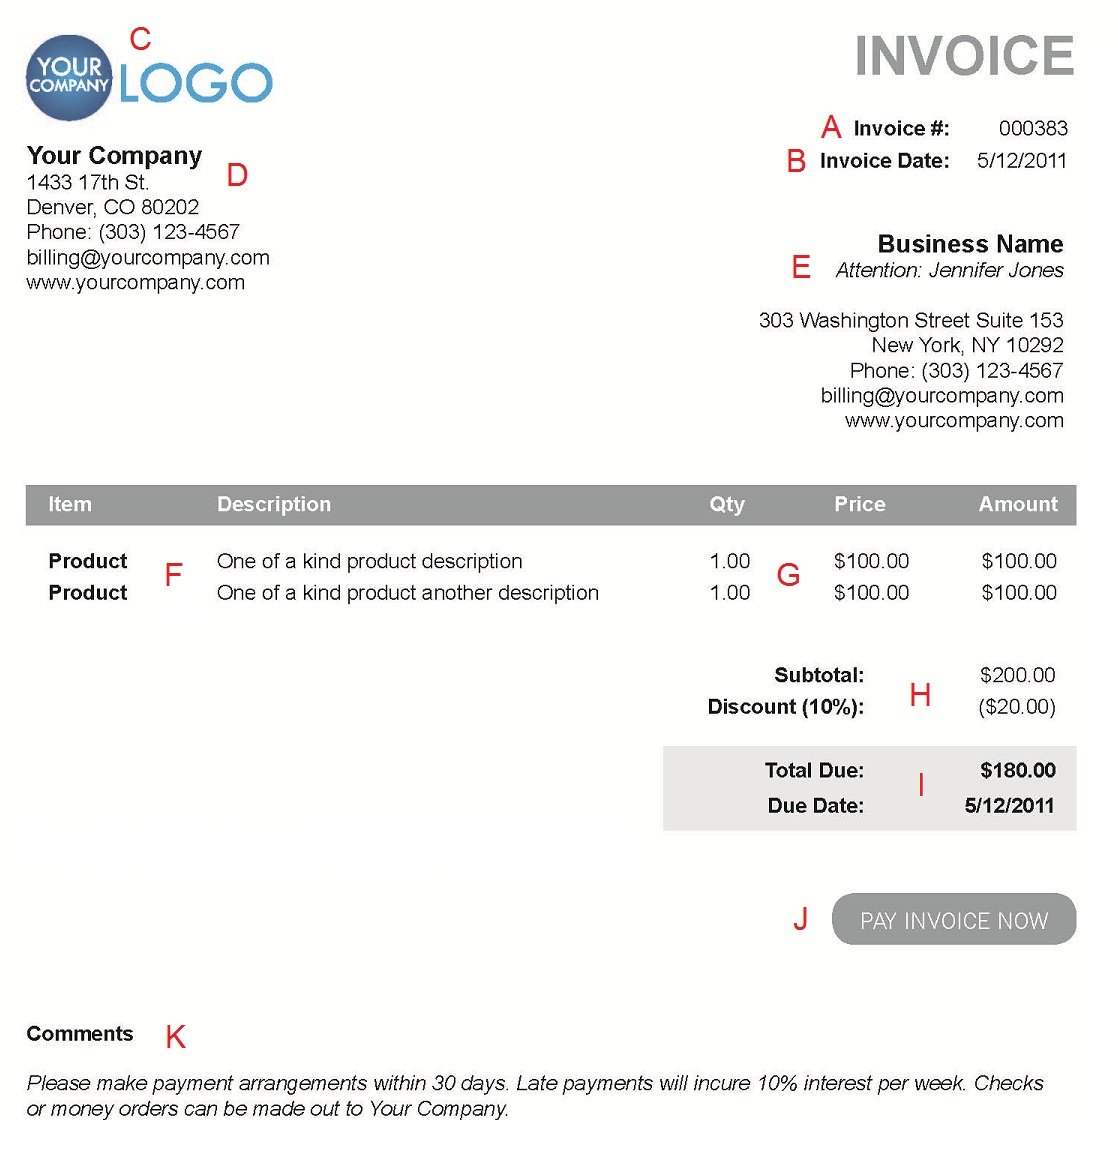 Coolmathgamesus  Picturesque The  Different Sections Of An Electronic Payment Invoice With Gorgeous A  With Adorable Invoice Department Also Commercial Invoice Packing List In Addition Free Invoice App For Ipad And Invoice Software Freeware As Well As Garage Invoice Software Additionally Written Invoice From Paysimplecom With Coolmathgamesus  Gorgeous The  Different Sections Of An Electronic Payment Invoice With Adorable A  And Picturesque Invoice Department Also Commercial Invoice Packing List In Addition Free Invoice App For Ipad From Paysimplecom